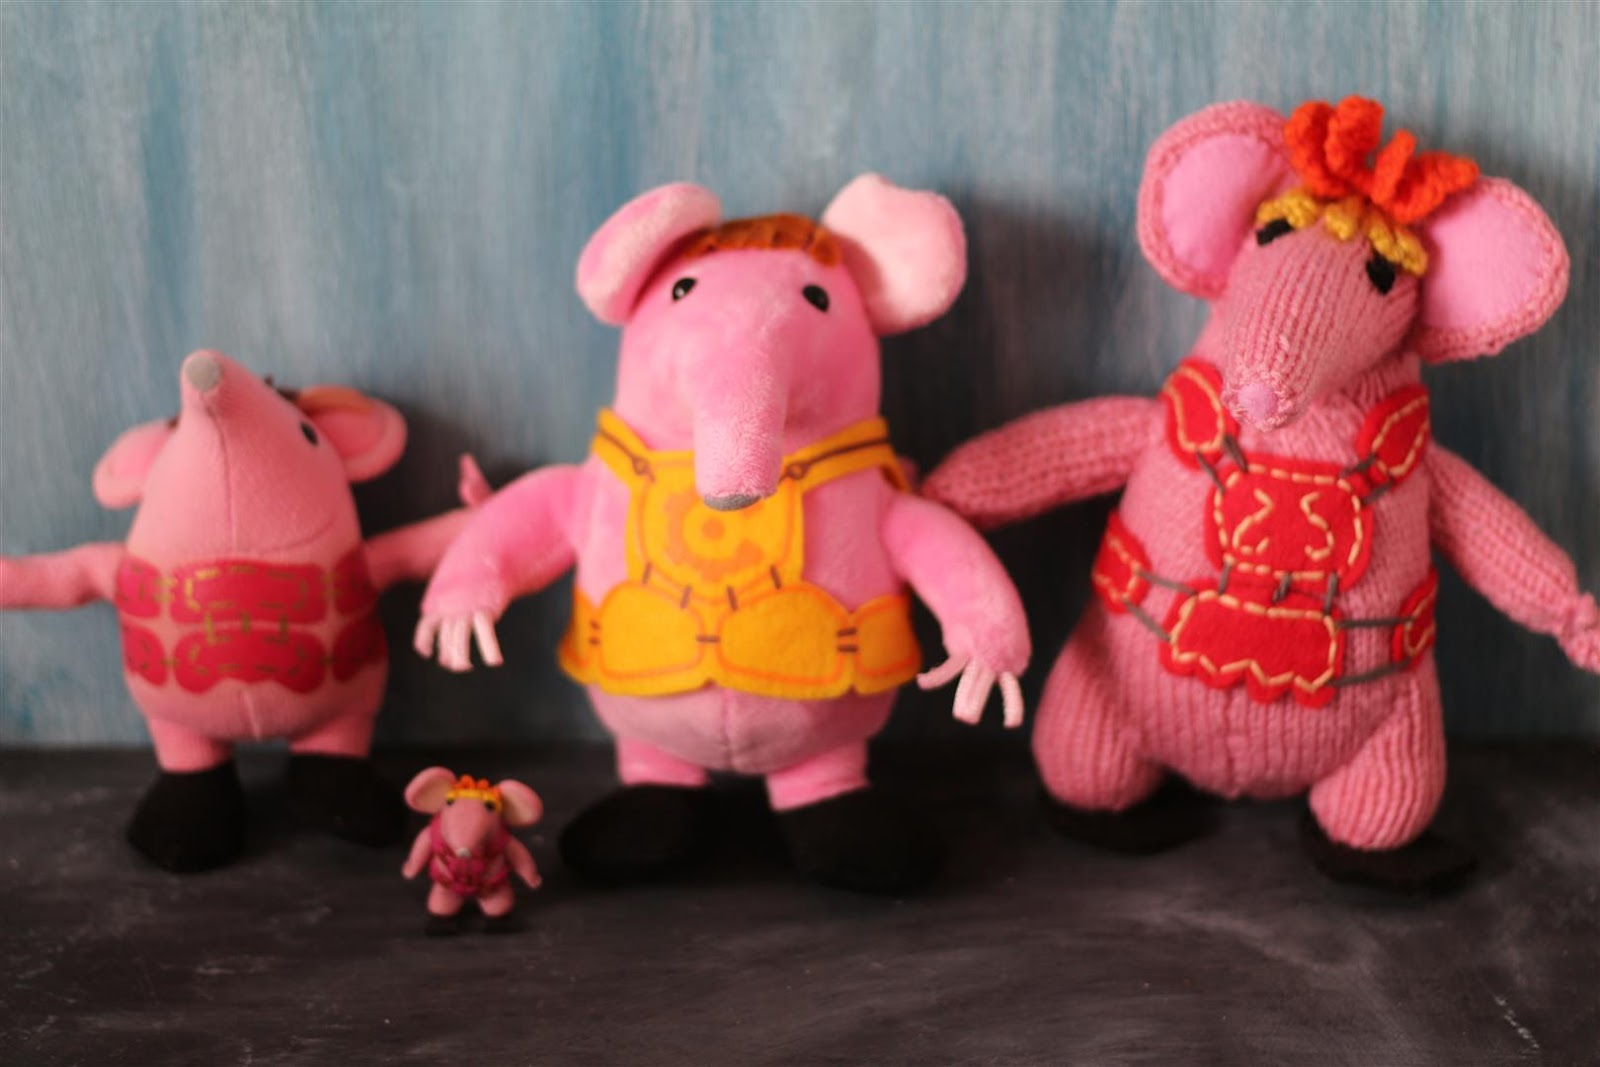 Beautiful The Clangers Knitting Pattern Sketch - Blanket Knitting ...